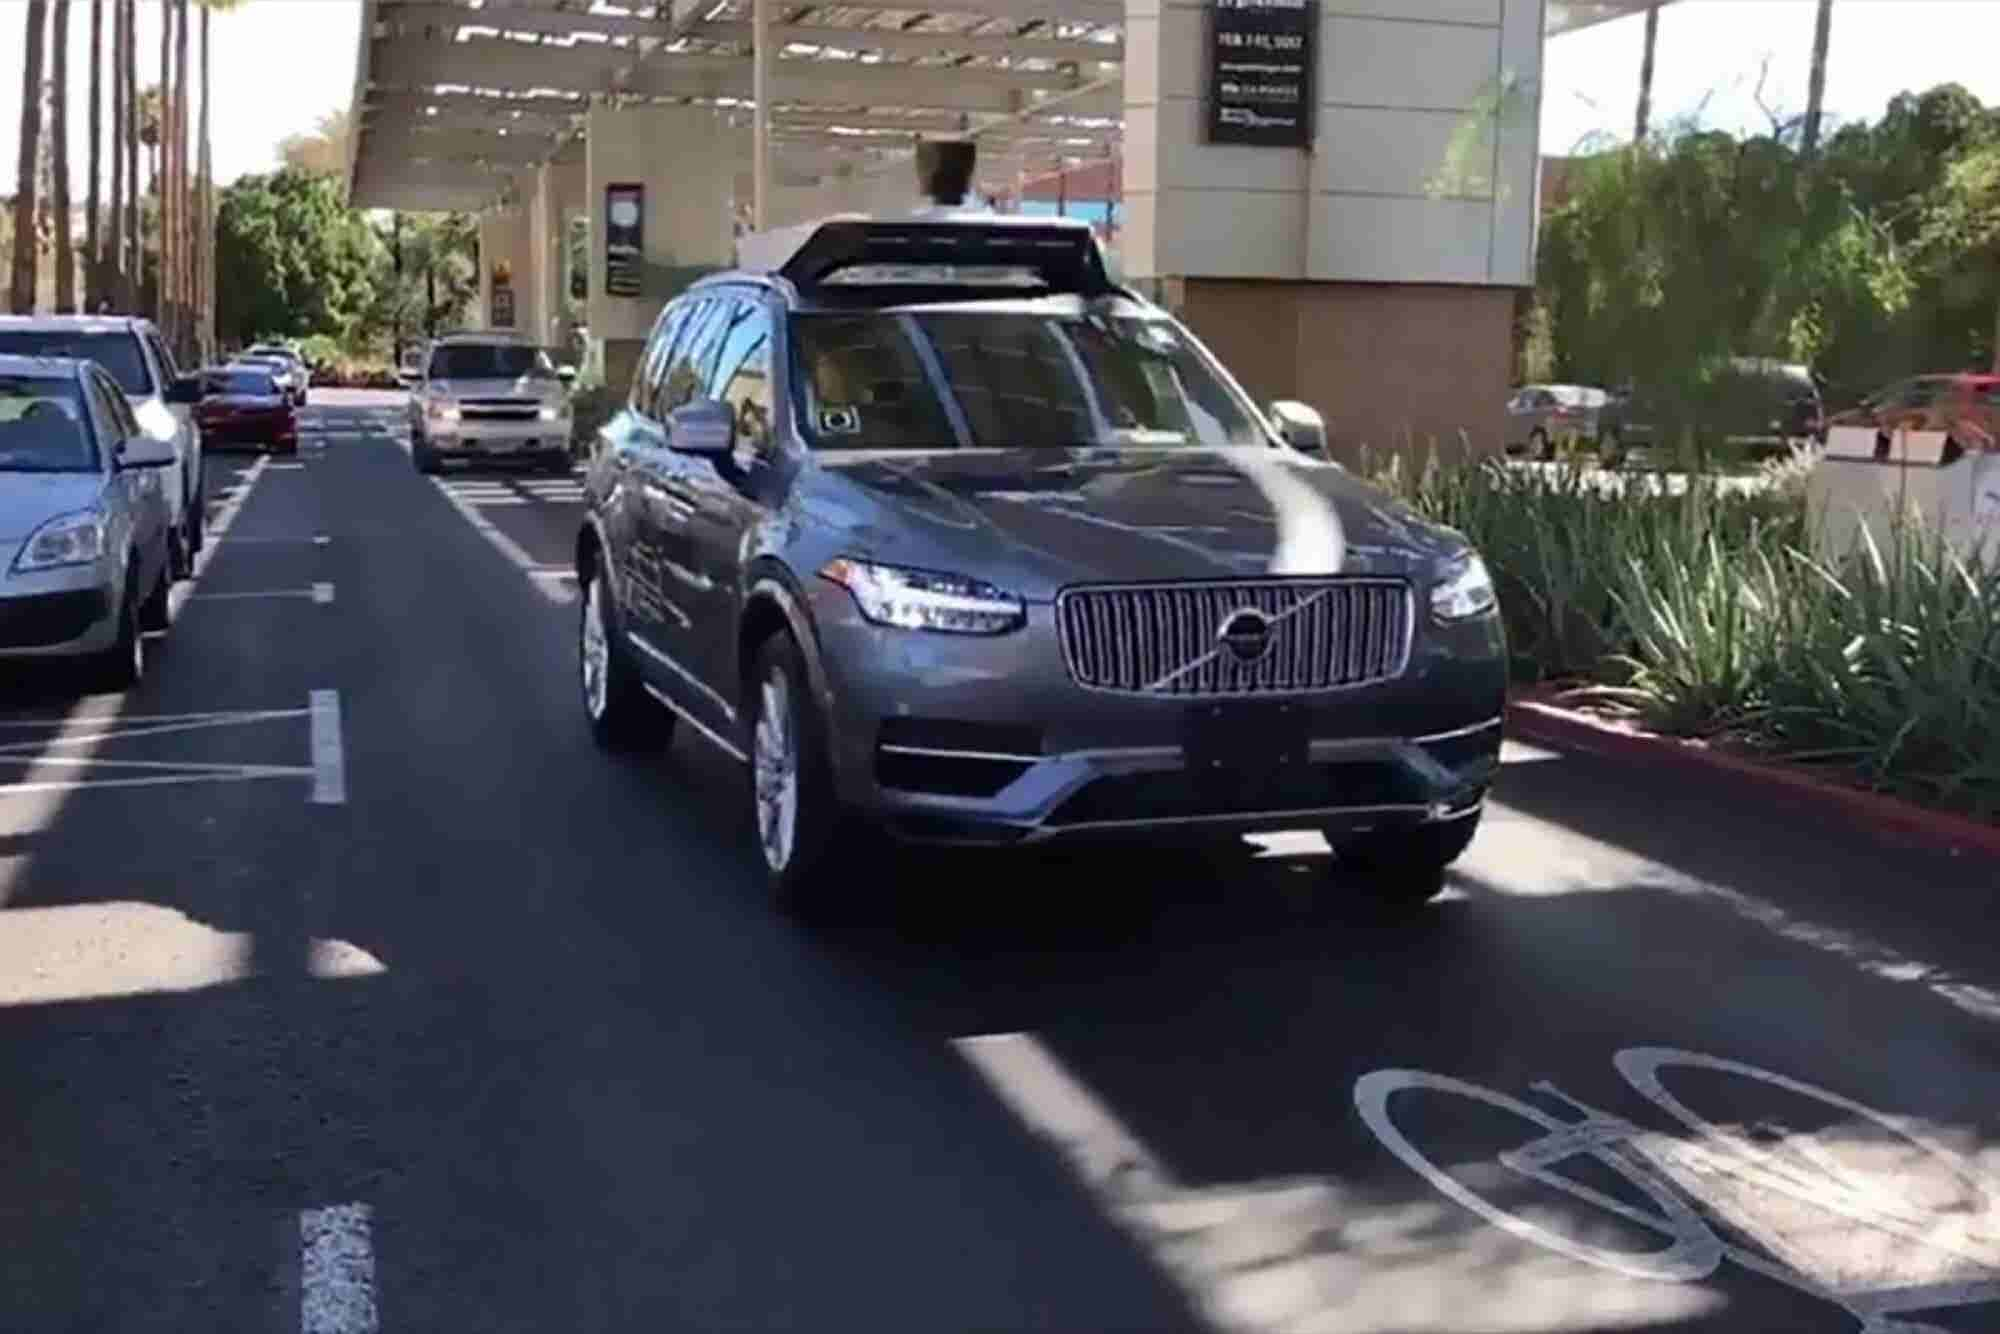 If the Feds Don't Act, Expect More Autonomous Car Accidents